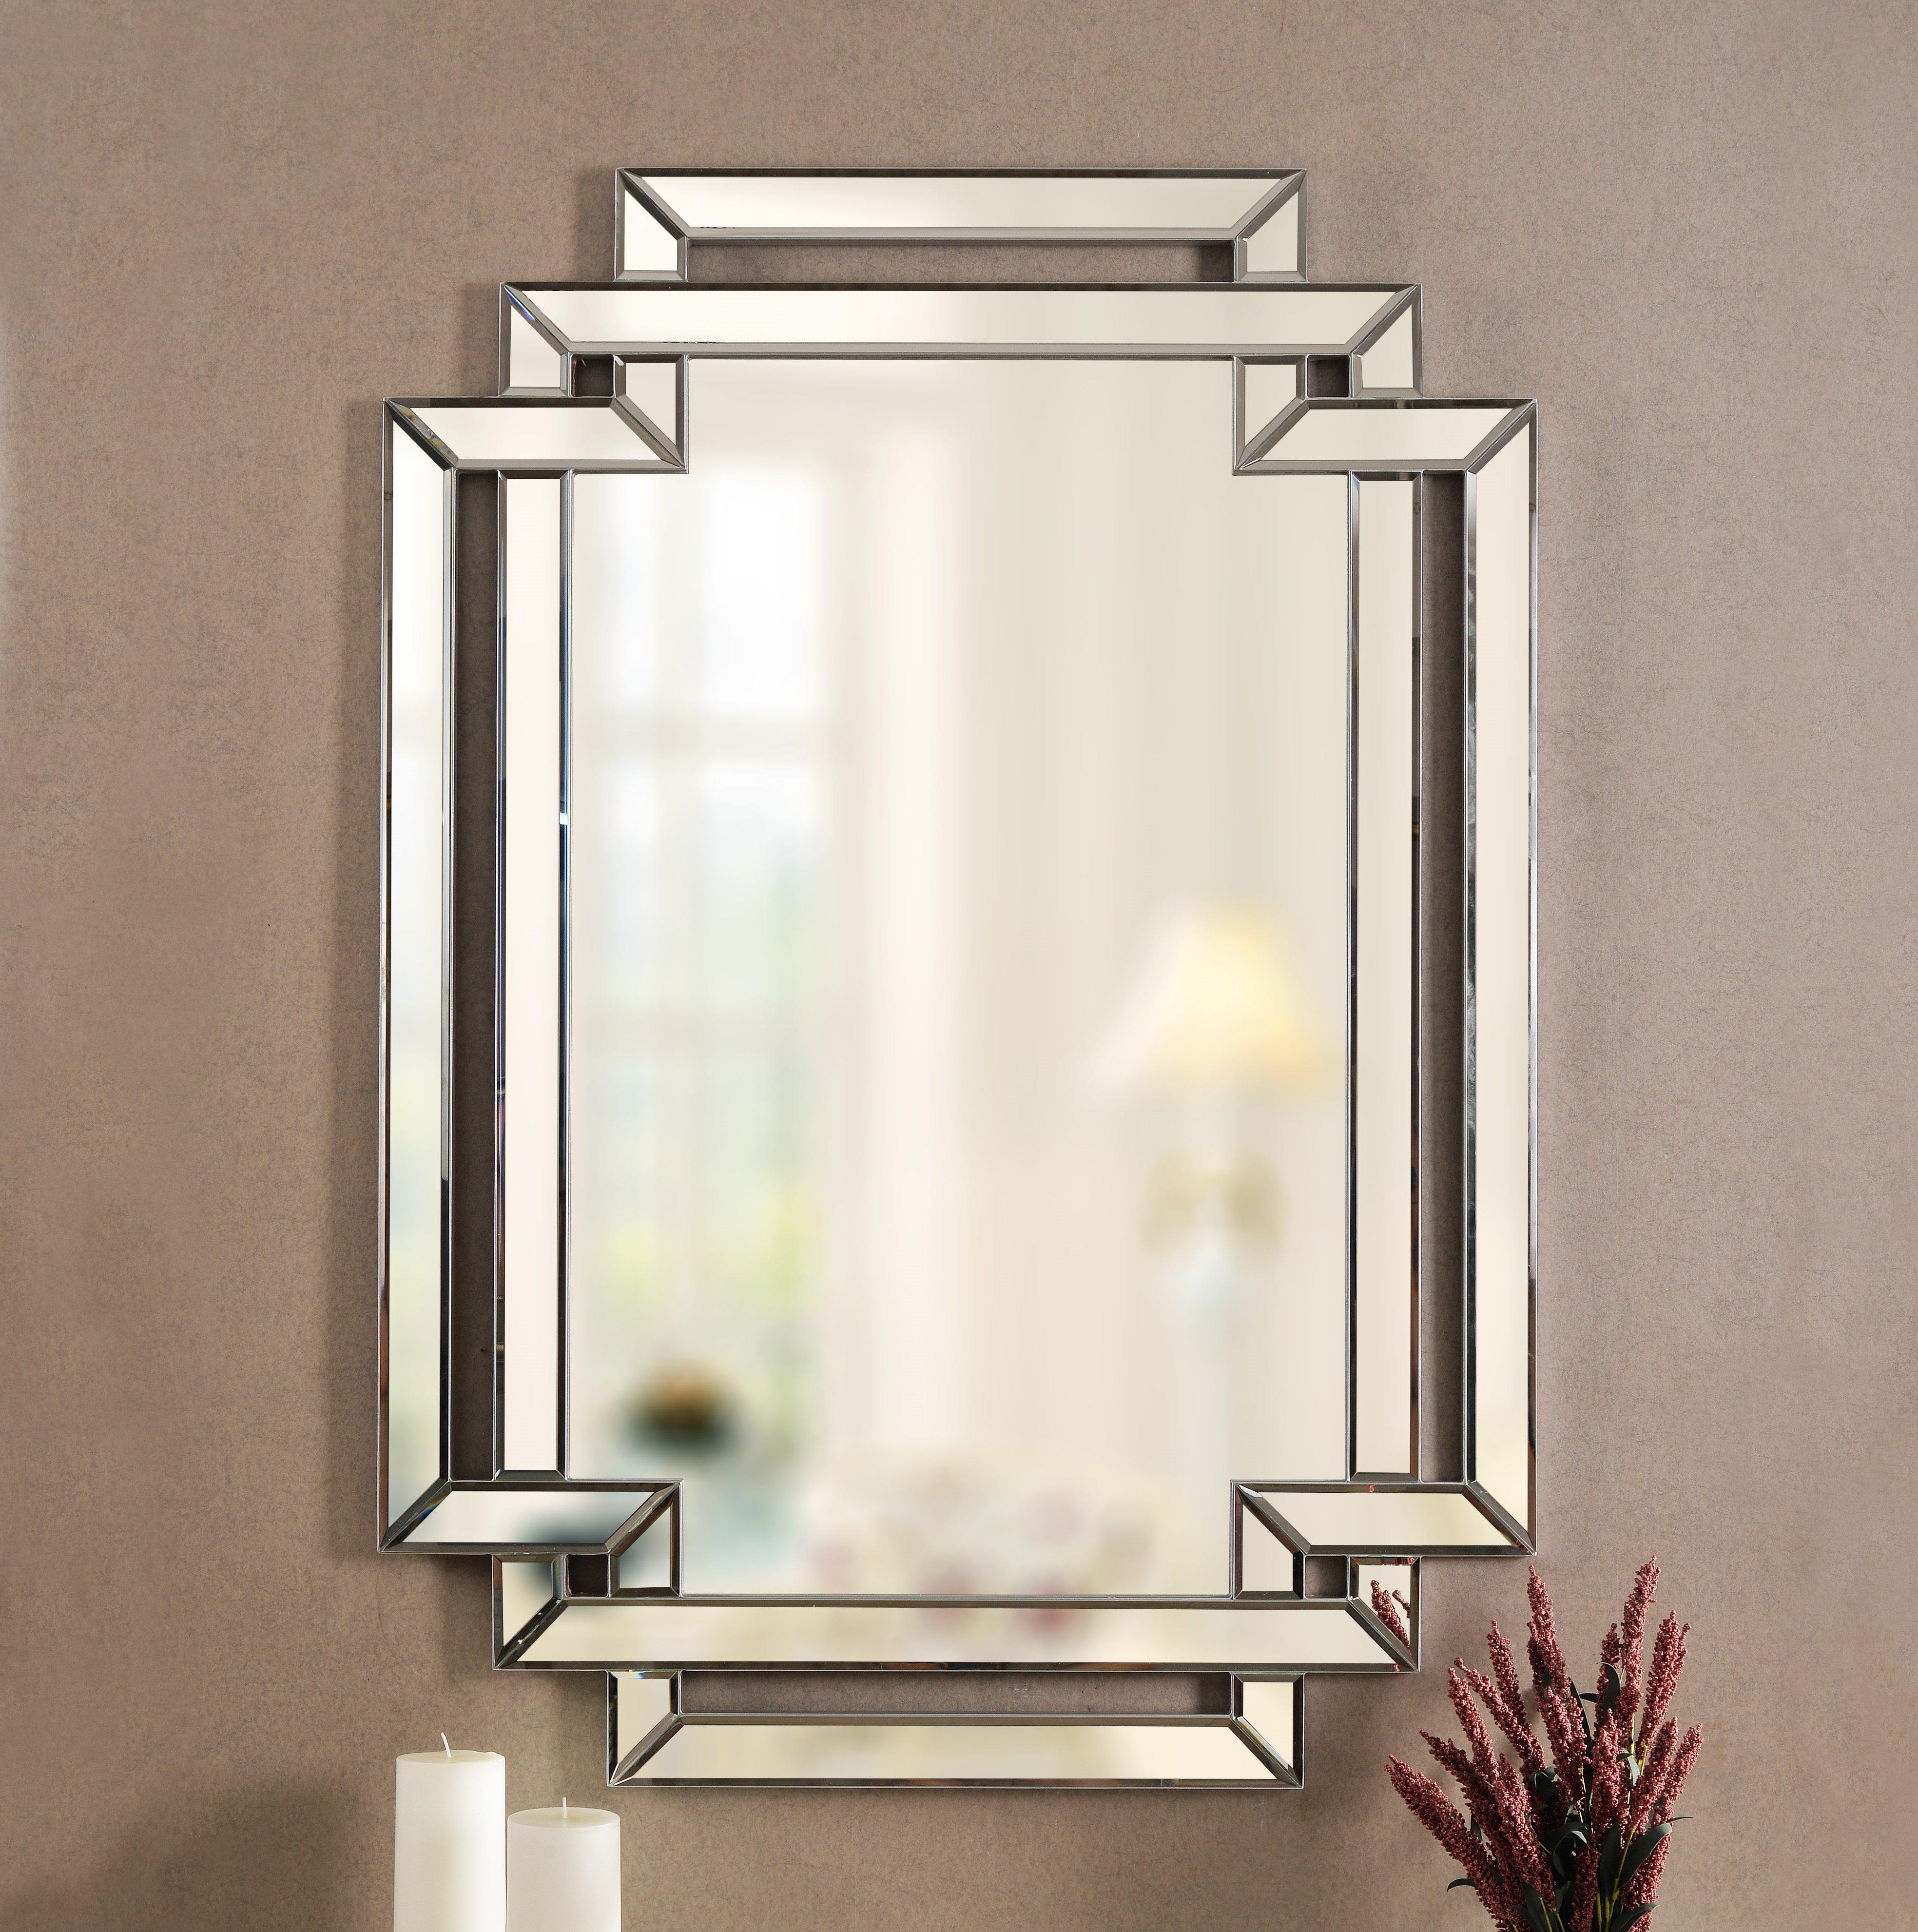 Seren Traditional Beveled Accent Mirror Regarding Willacoochee Traditional Beveled Accent Mirrors (Image 12 of 20)